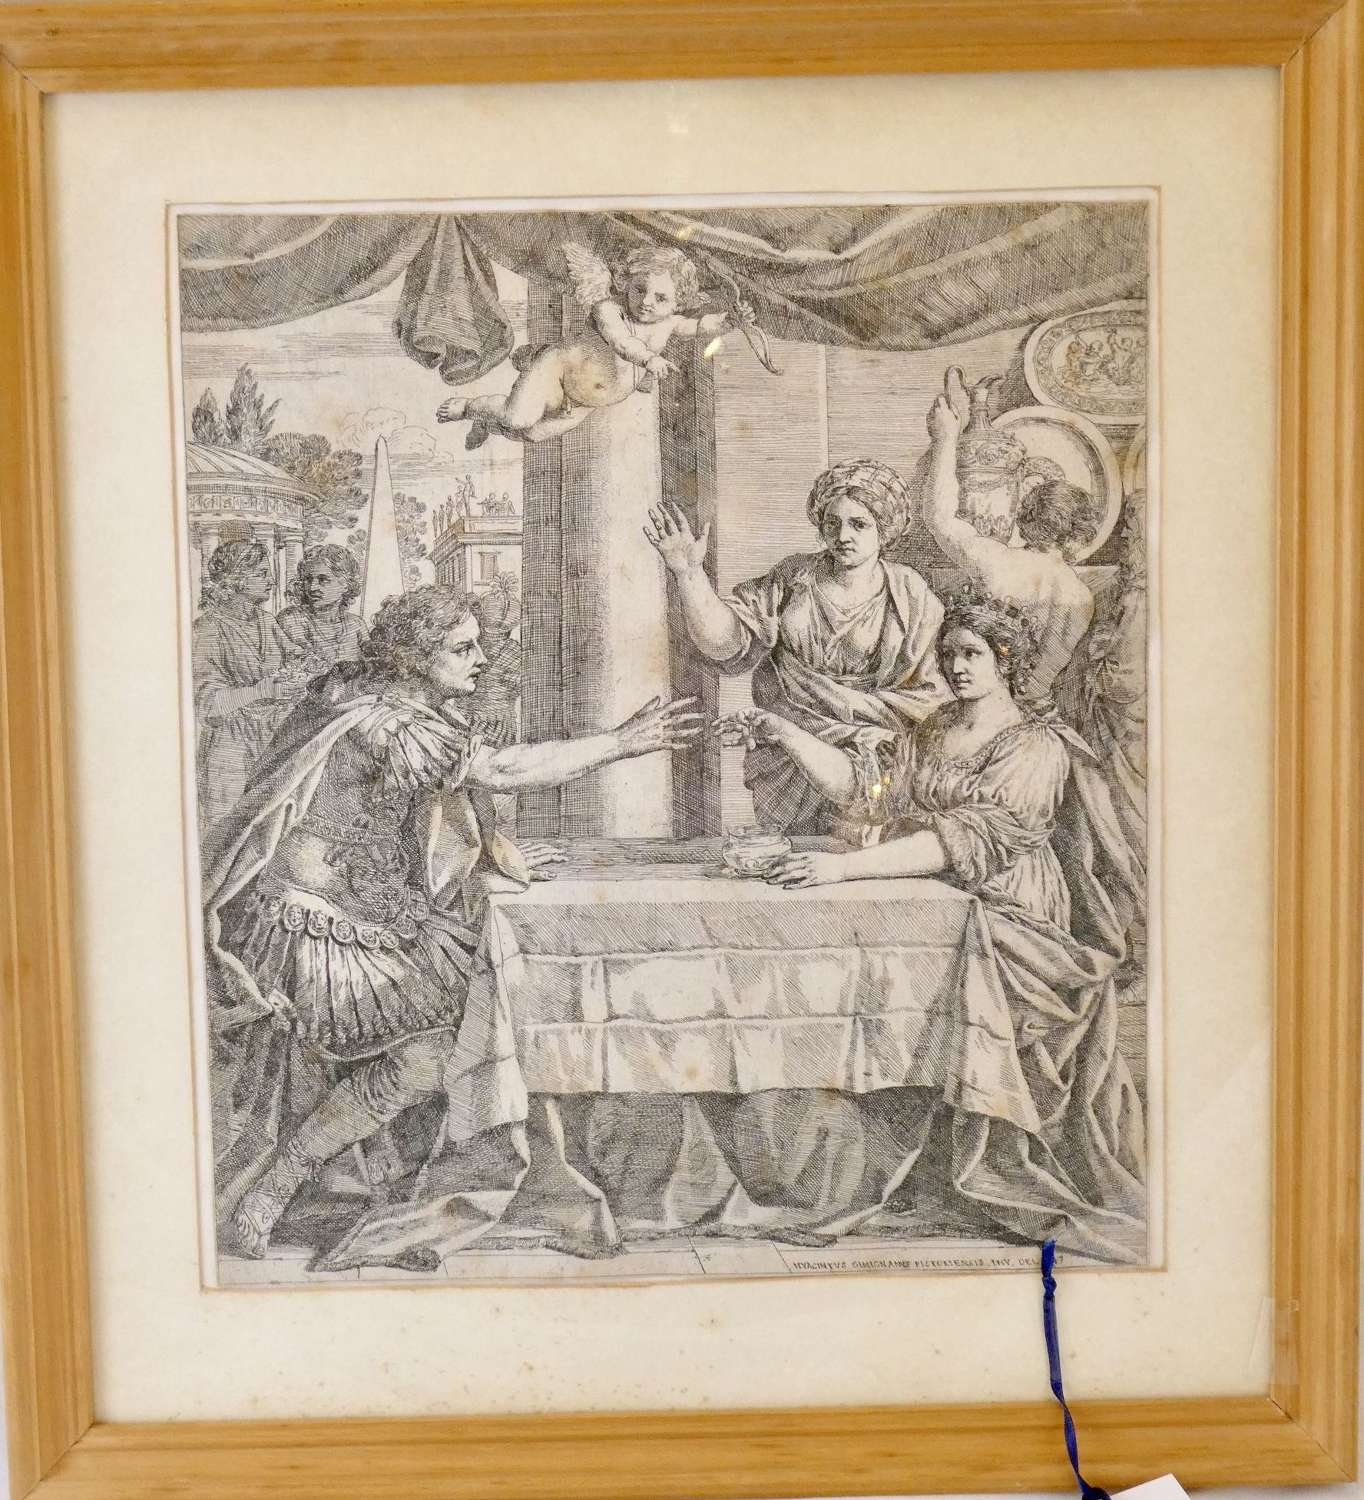 Etching dated 1647